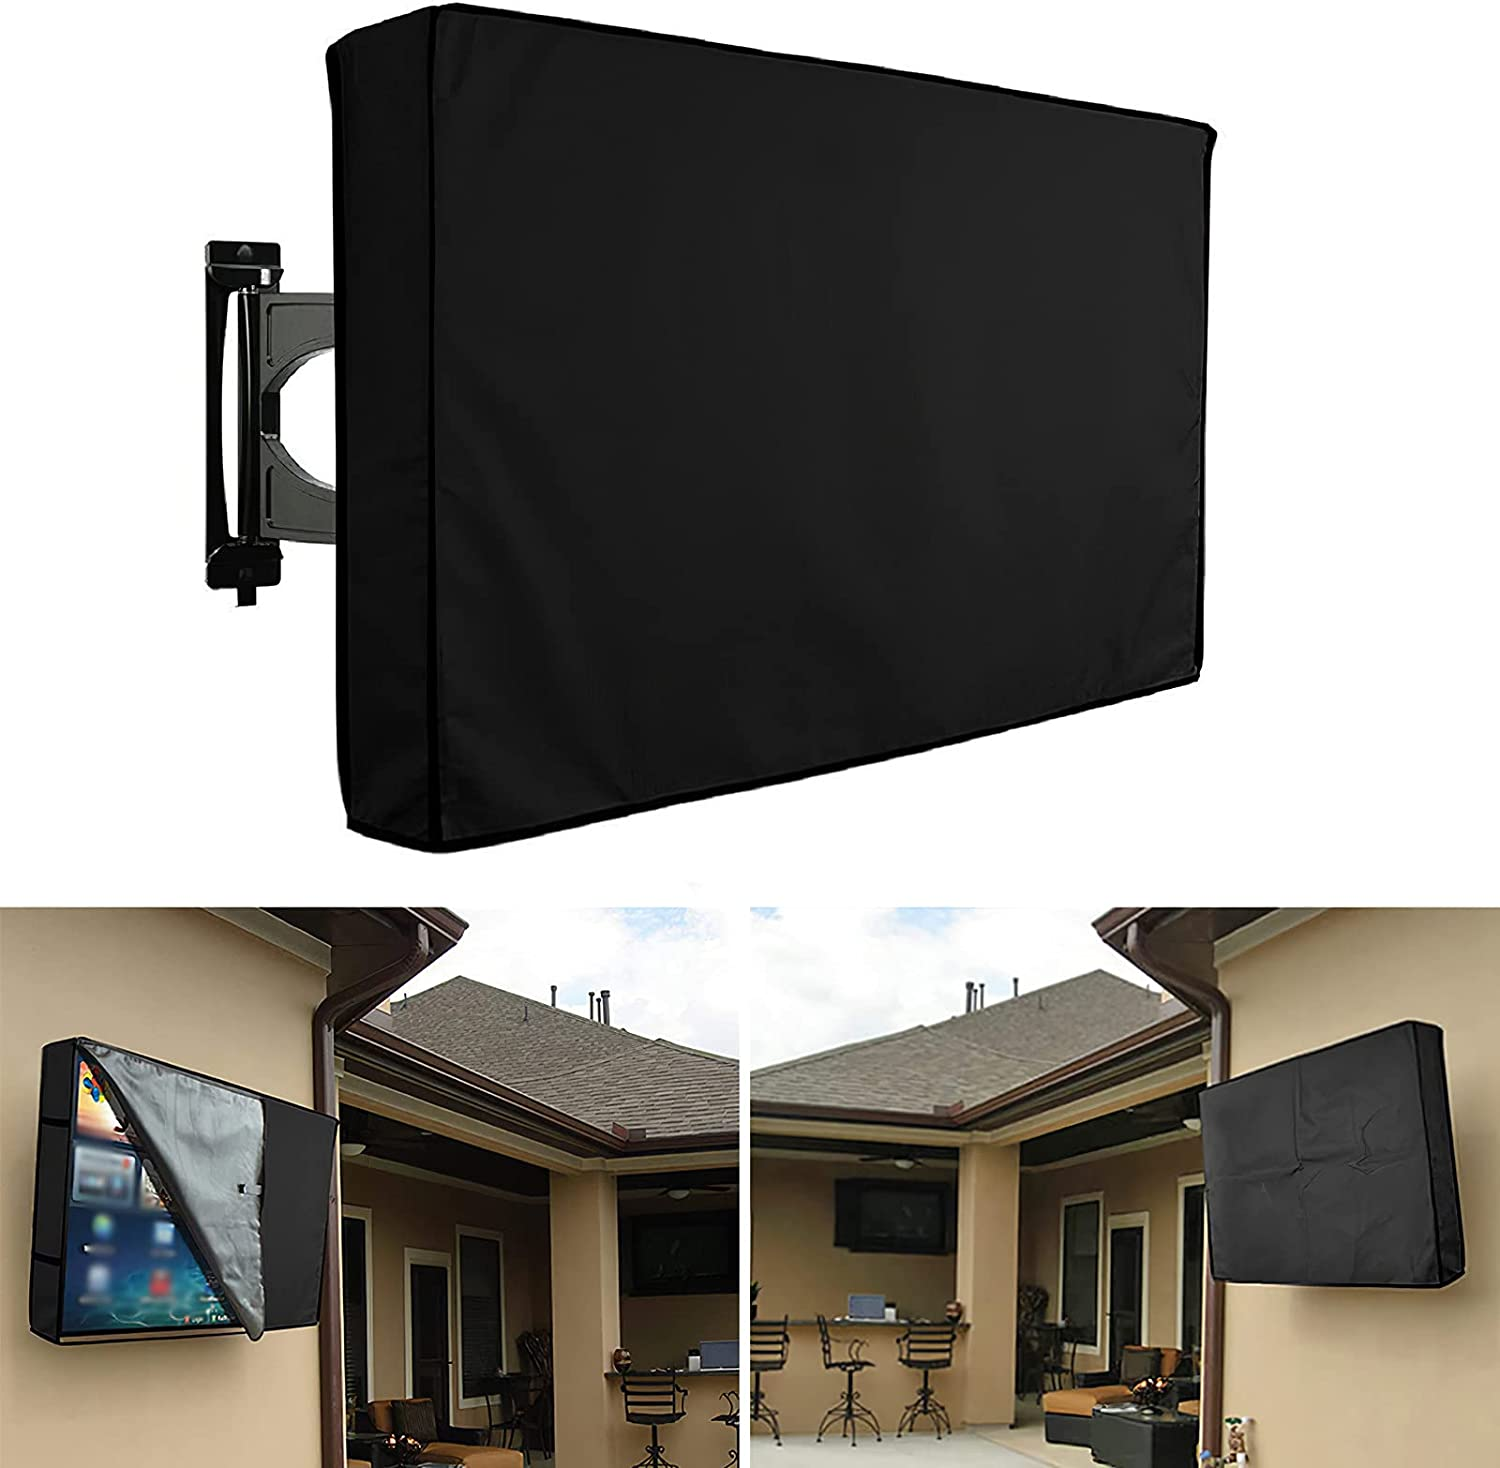 Direct stock discount SHANGSKY Outdoor TV Cover Weatherproof 6 Outside 60 Save money to